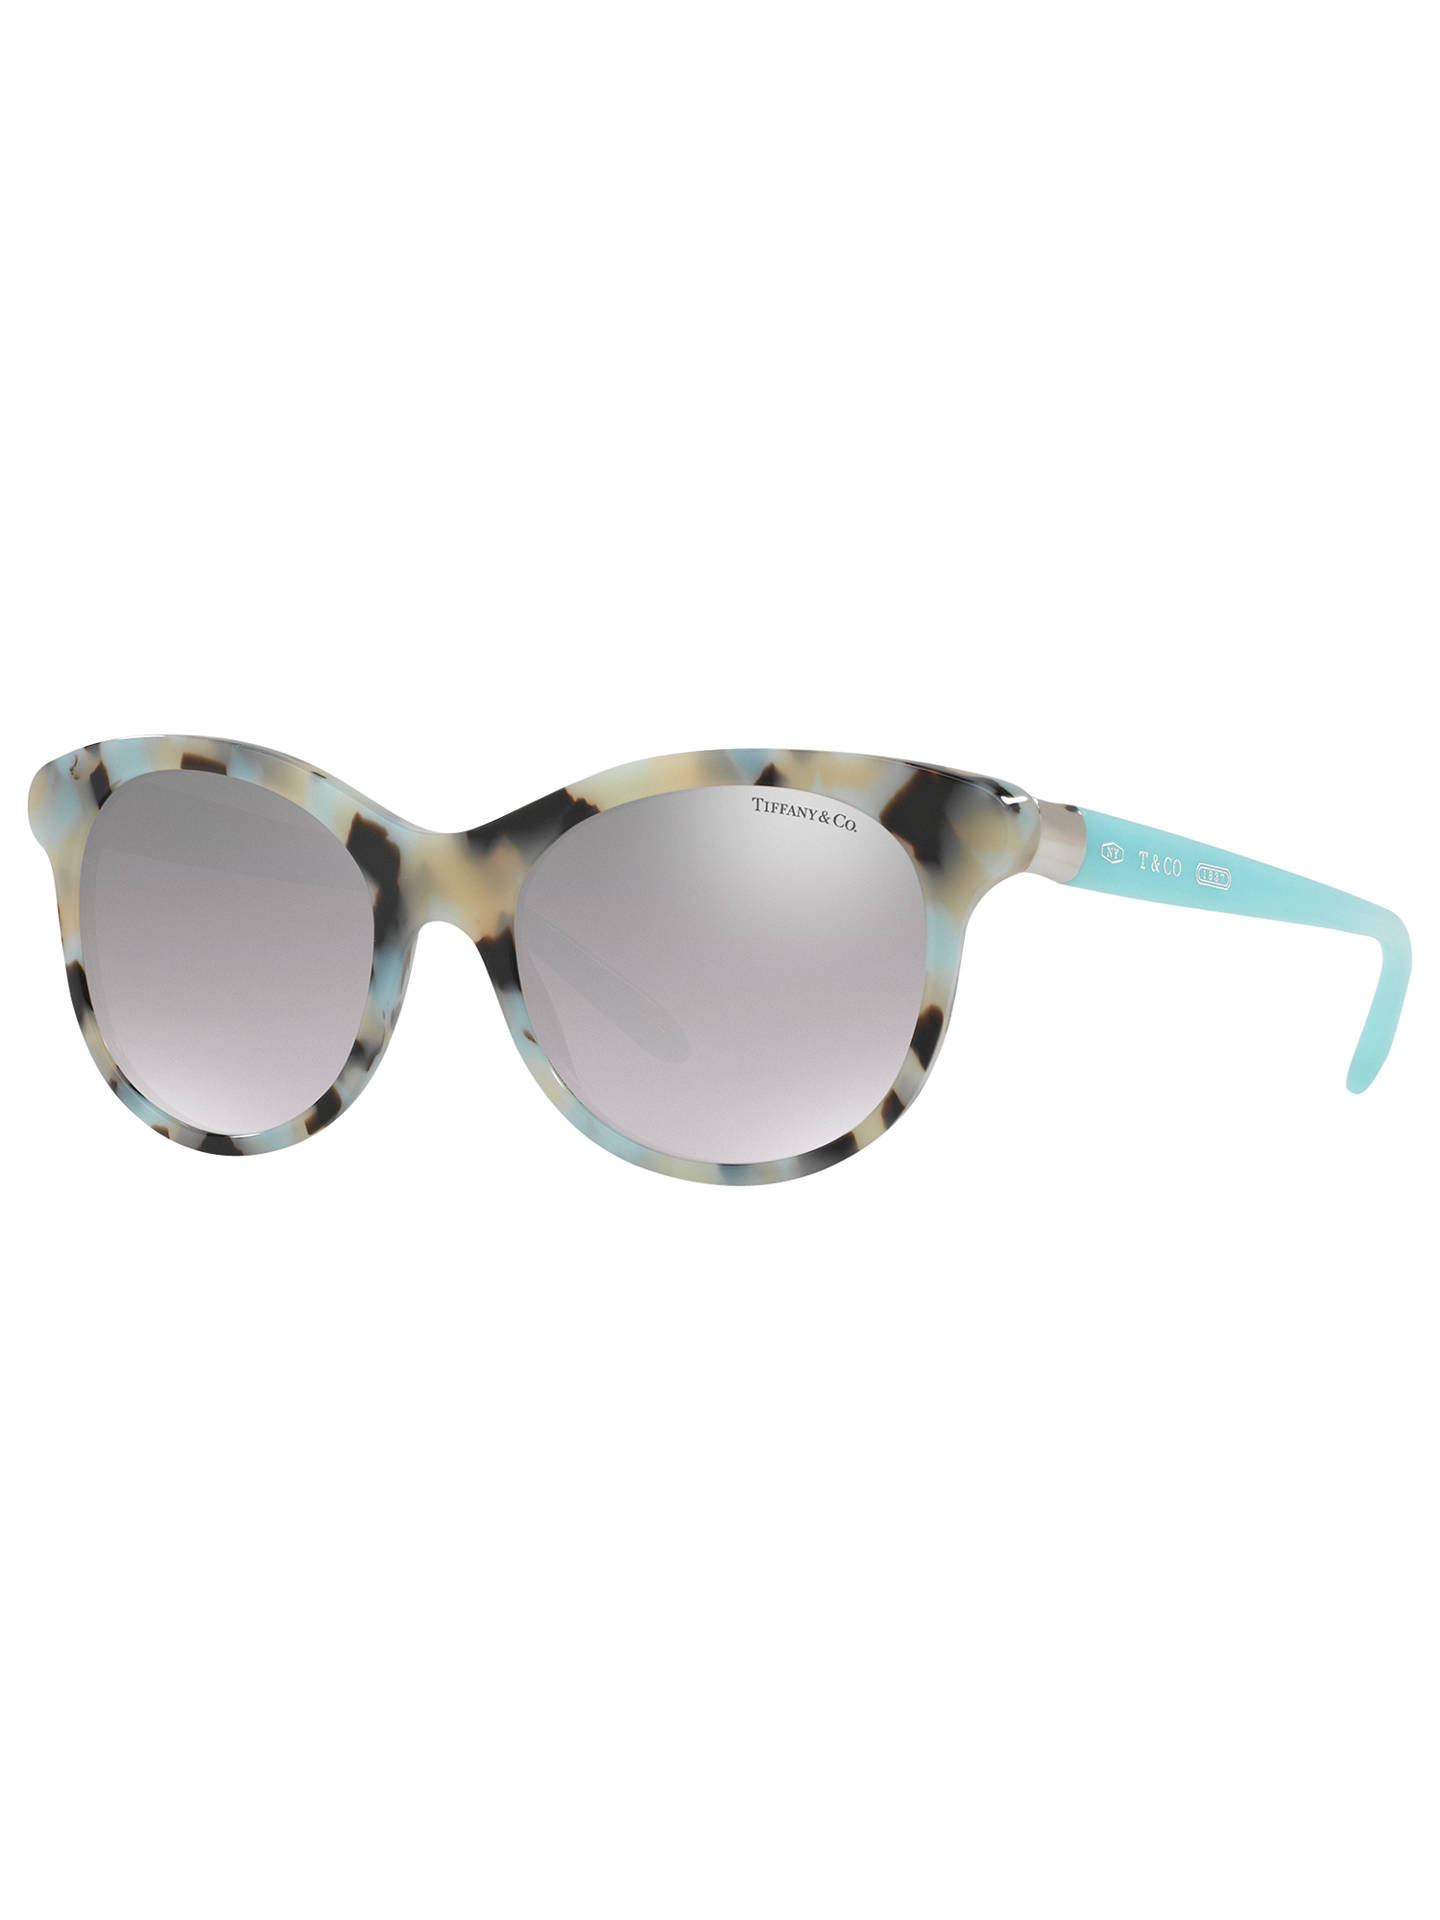 d71c60fc19ec Buy Tiffany   Co TF4125 Oval Sunglasses